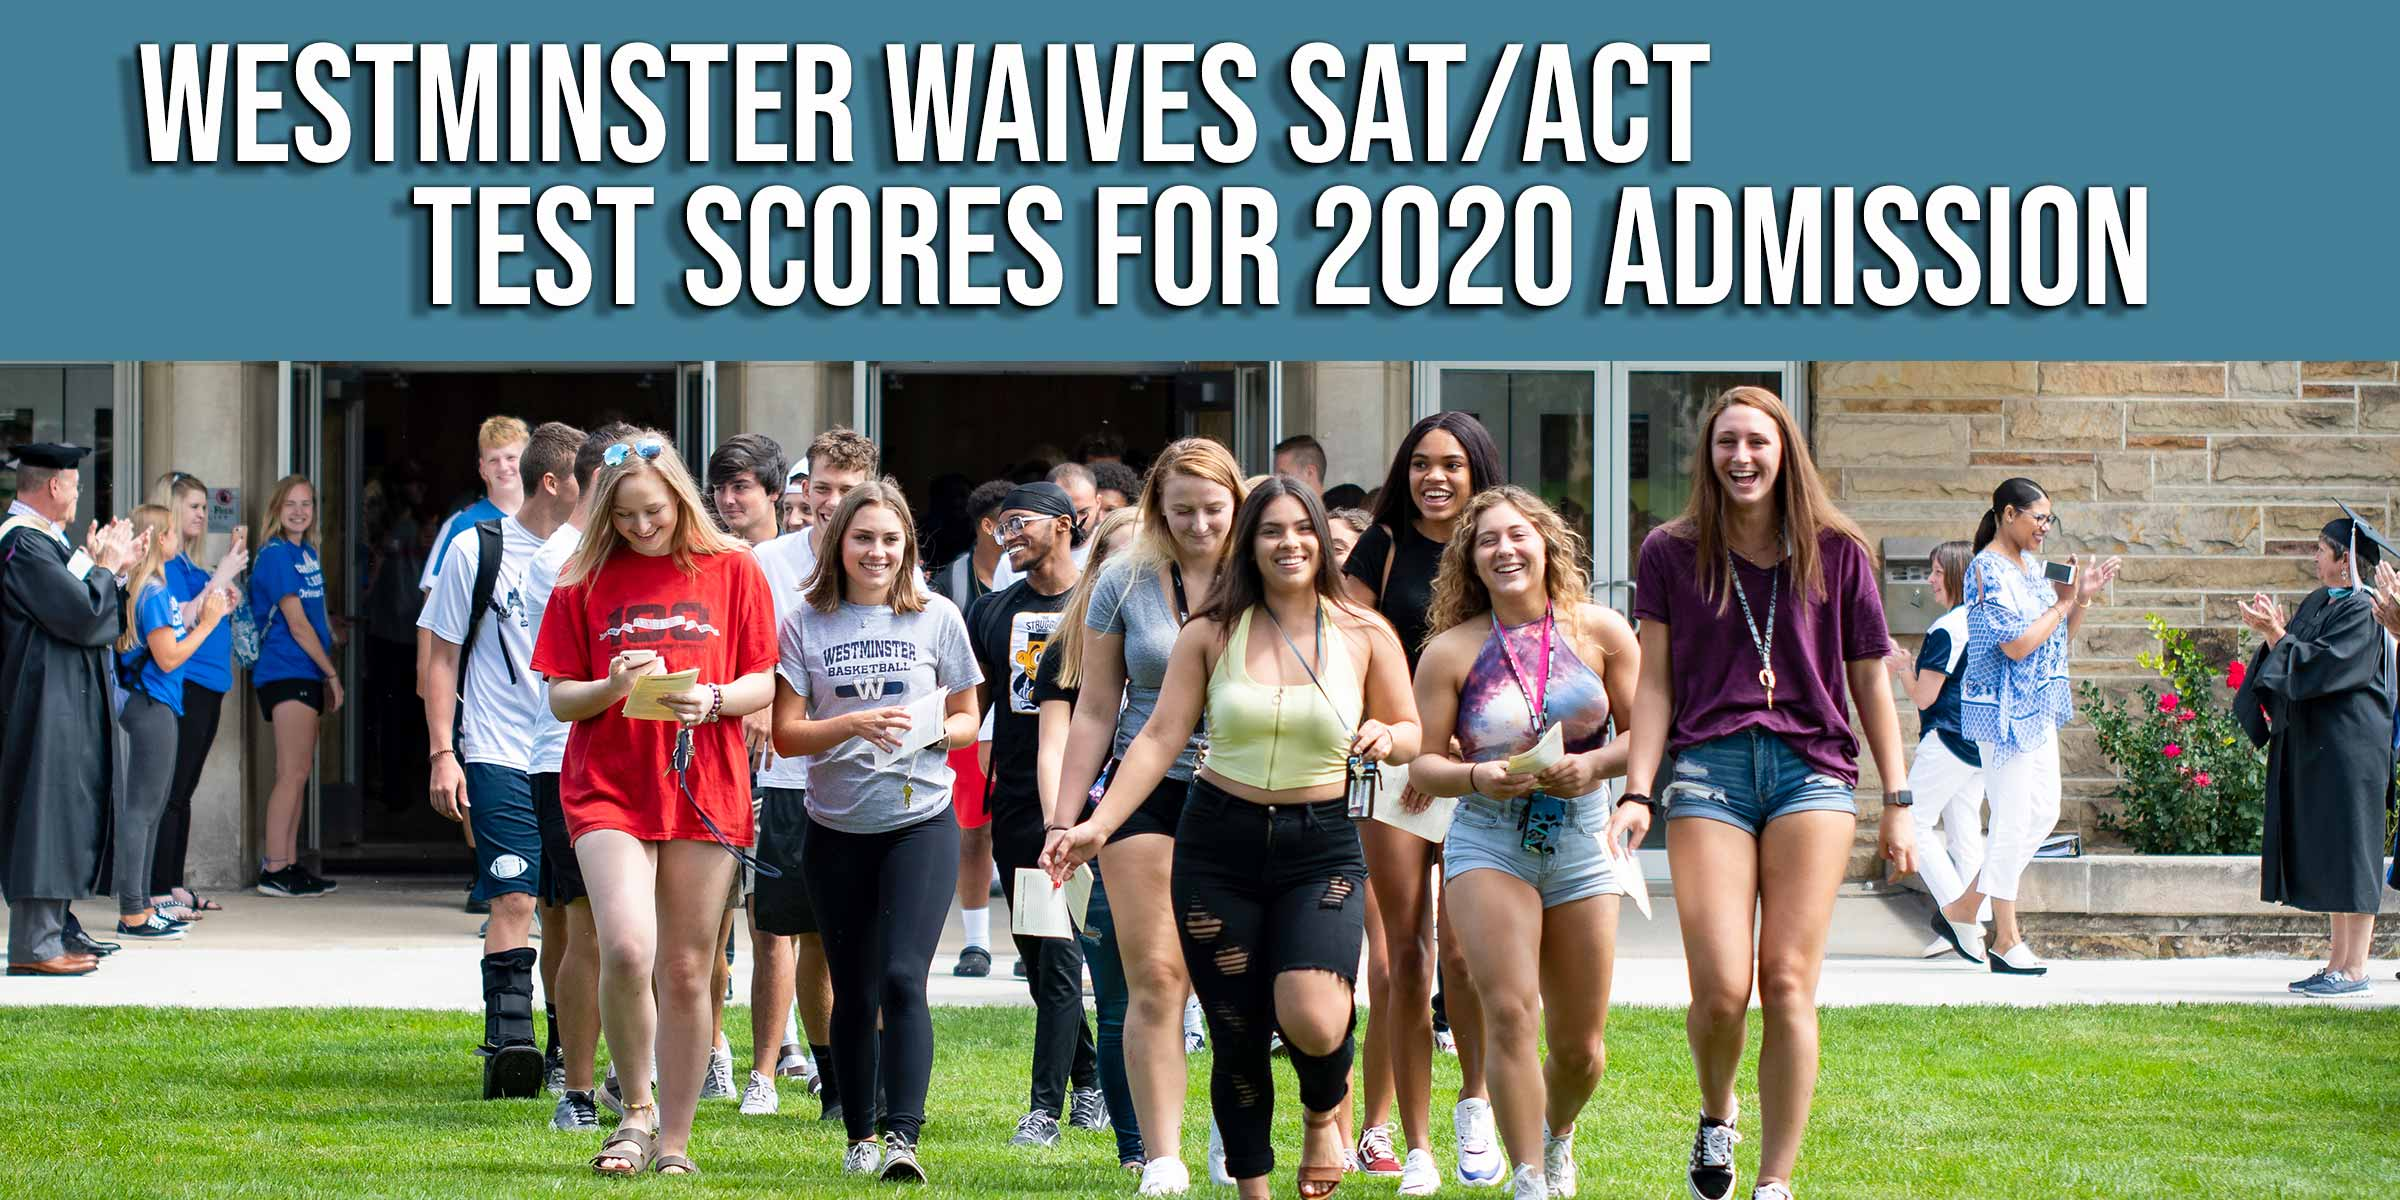 Westminster College to waive test scores for applicants for 2020 admission